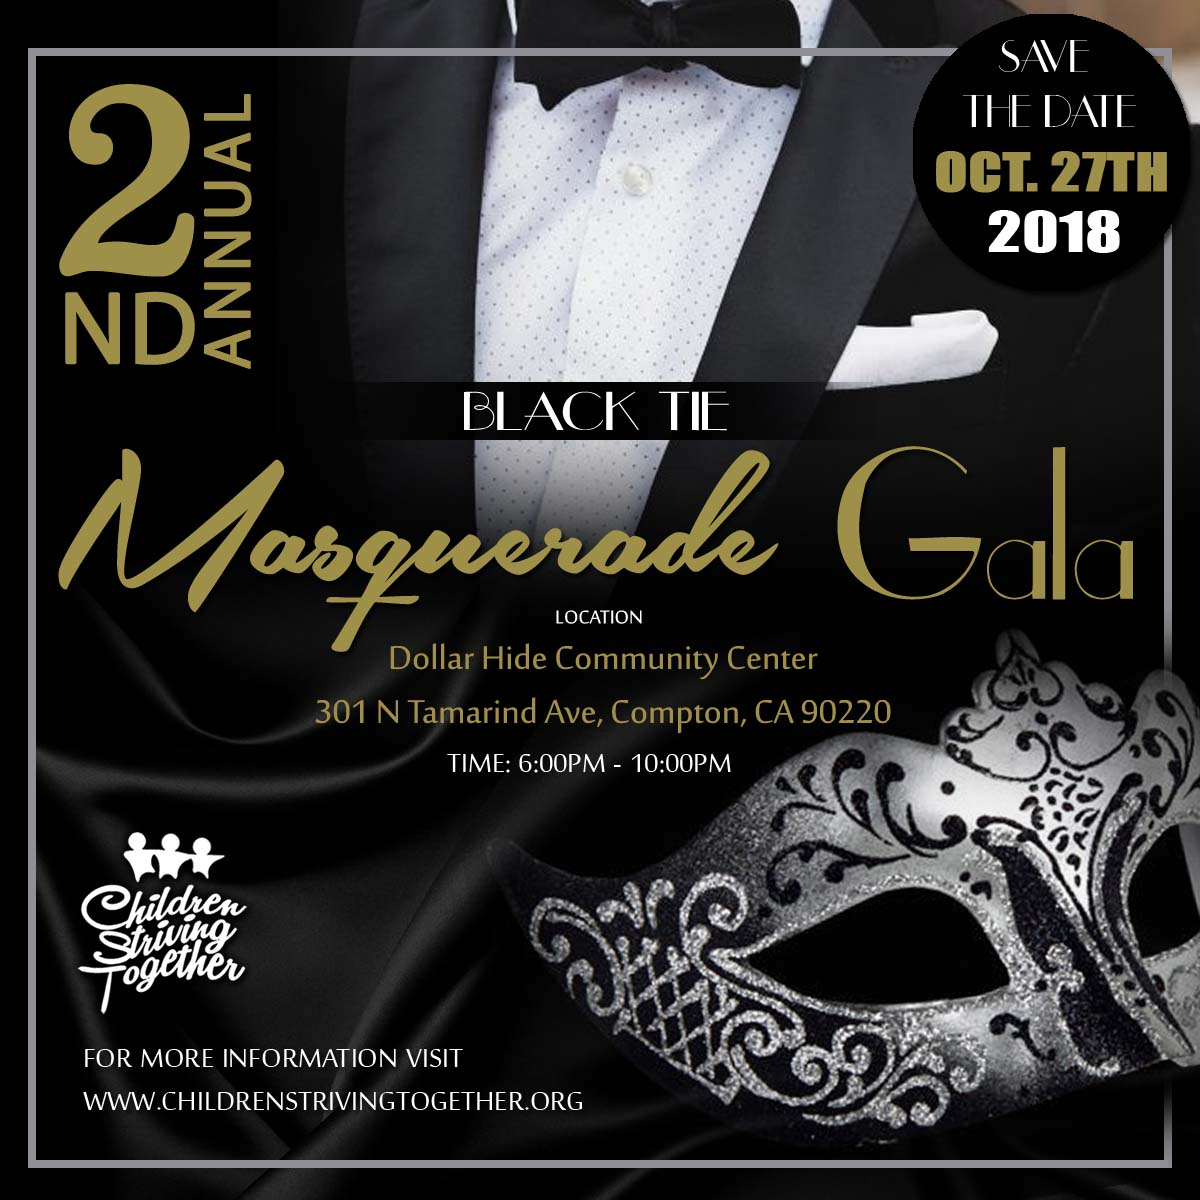 cst masq save the date 2018 copy